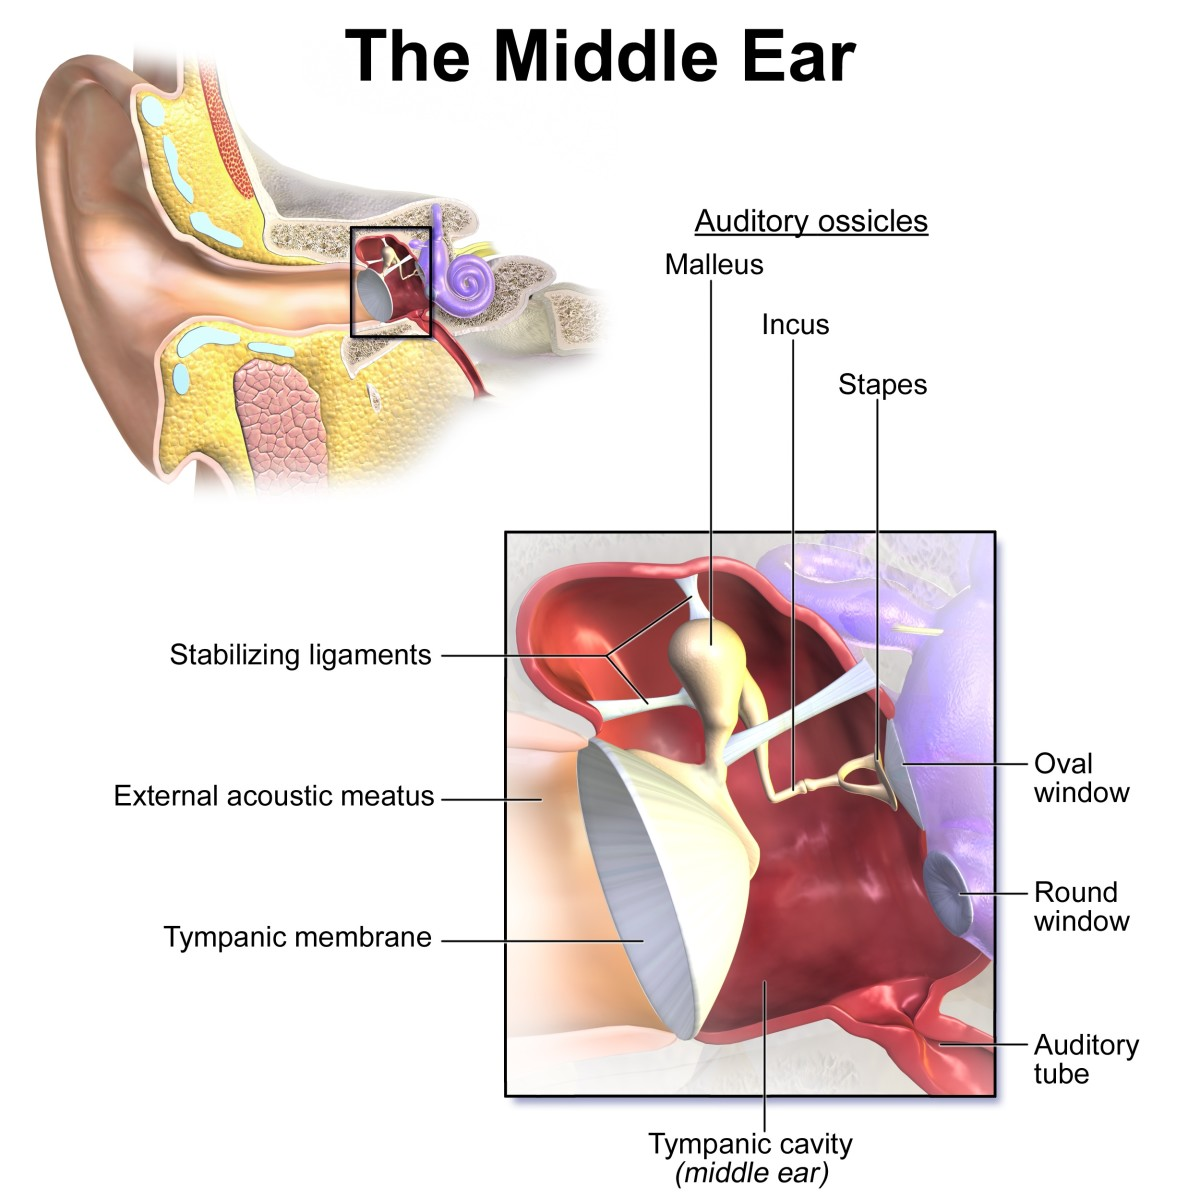 The malleus (hammer), incus (anvil), and stapes (stirrup) in the middle ear are collectively known as ossicles.